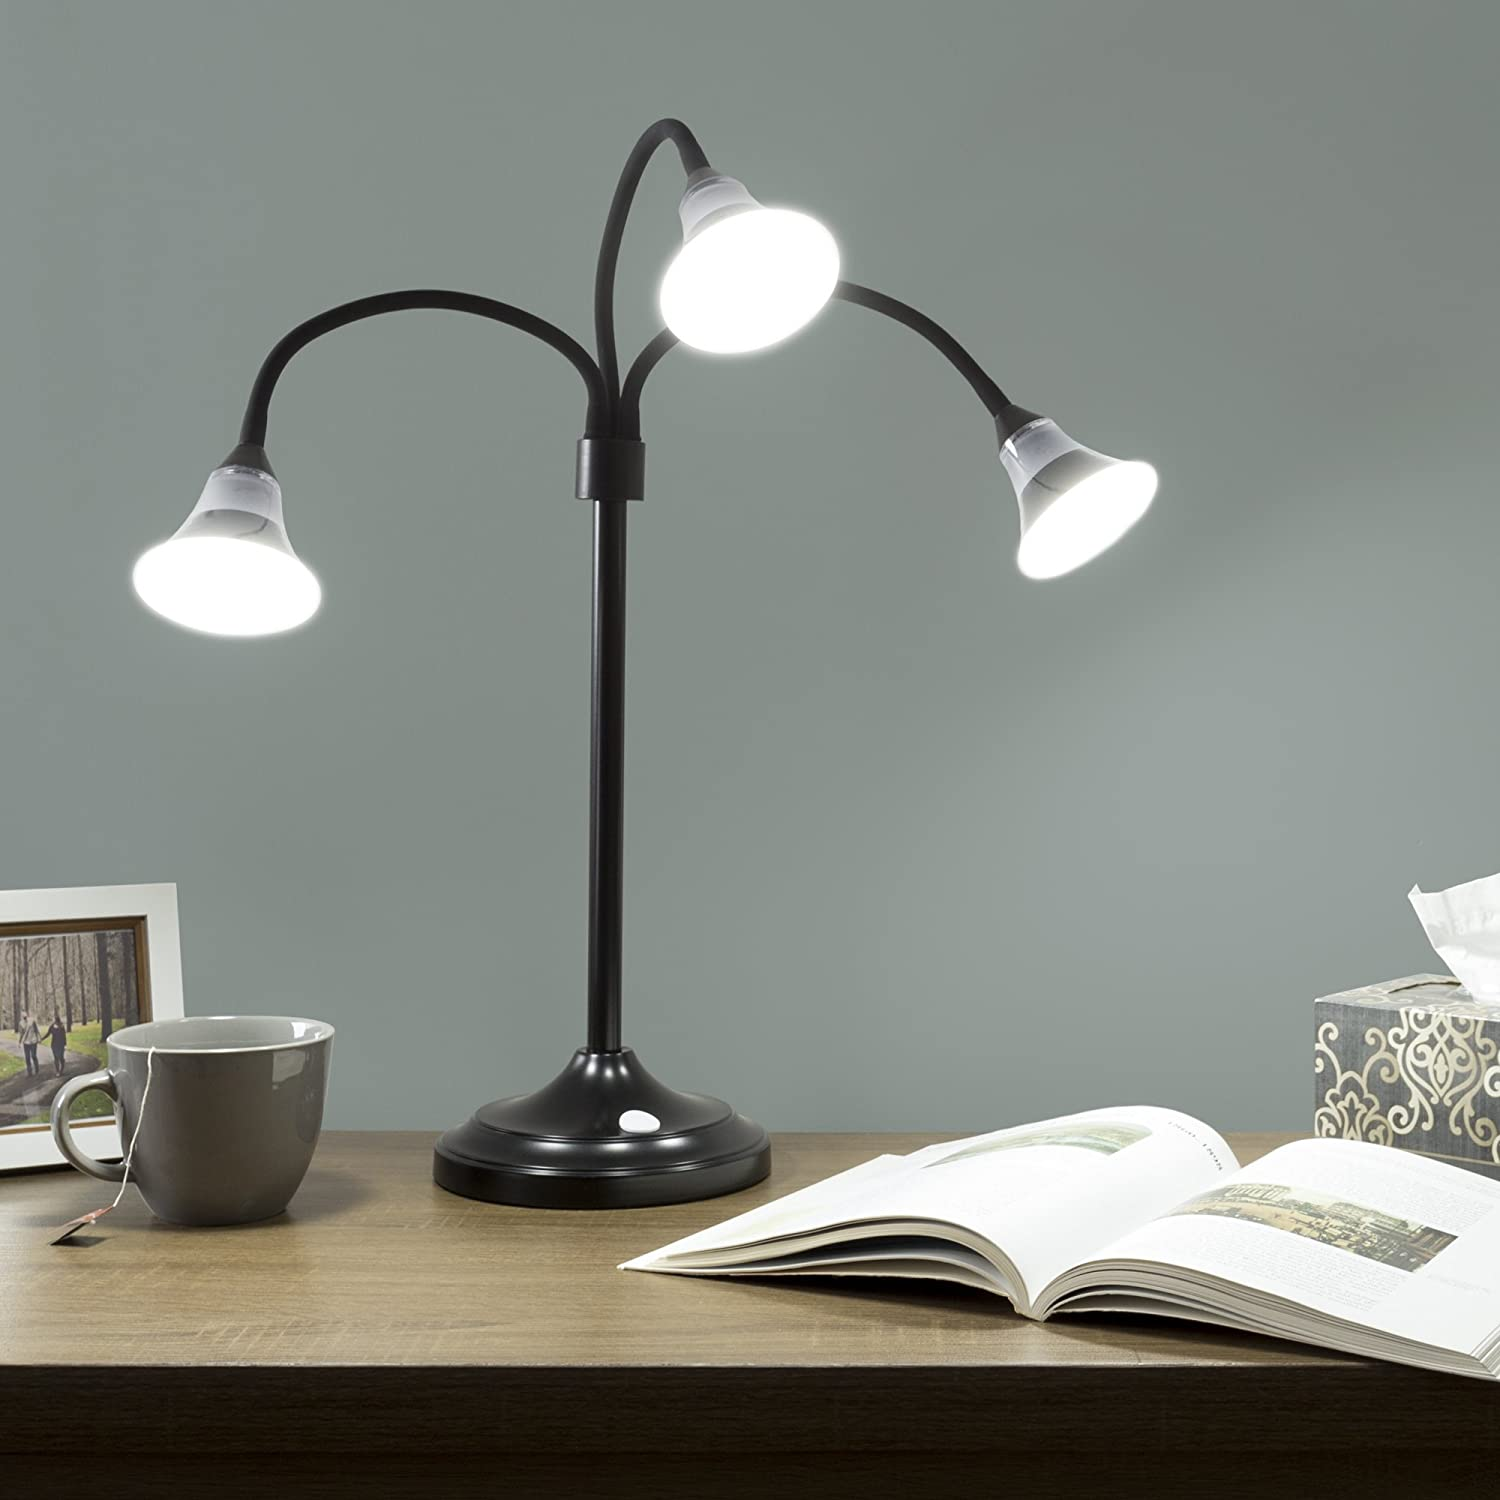 Touch Switch and Dimmer Lavish Home 72-4001B 3 Head Floor Lamp Black LED Light with Adjustable Arms